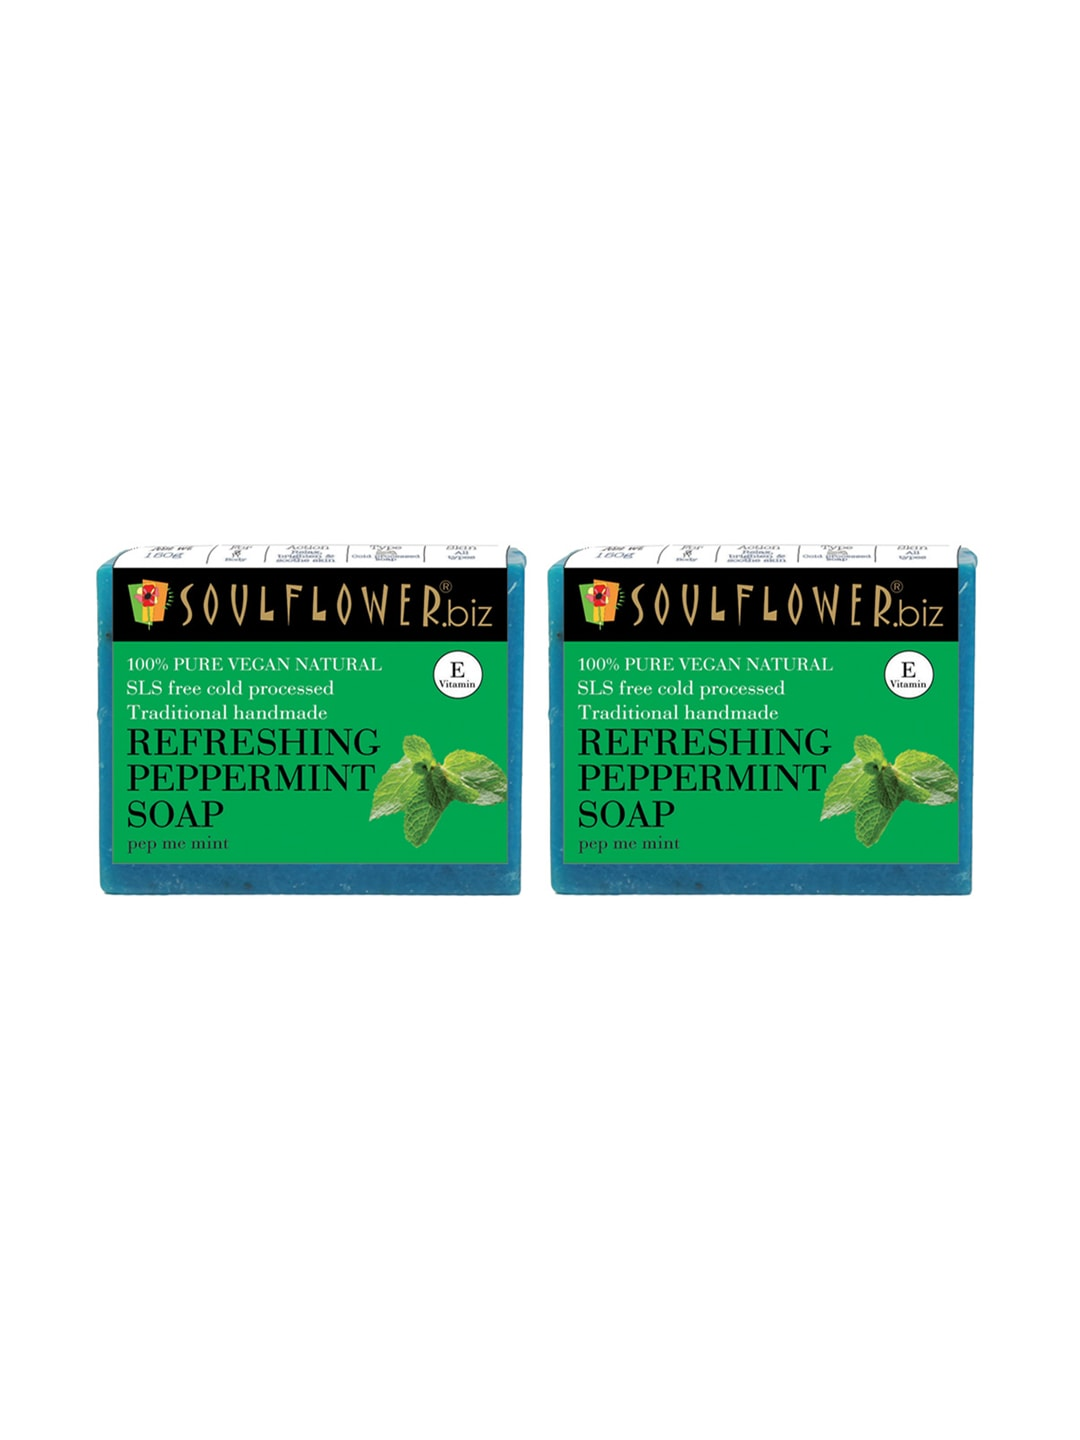 Soulflower Unisex Pack of 2 Refreshing Peppermint Soaps image